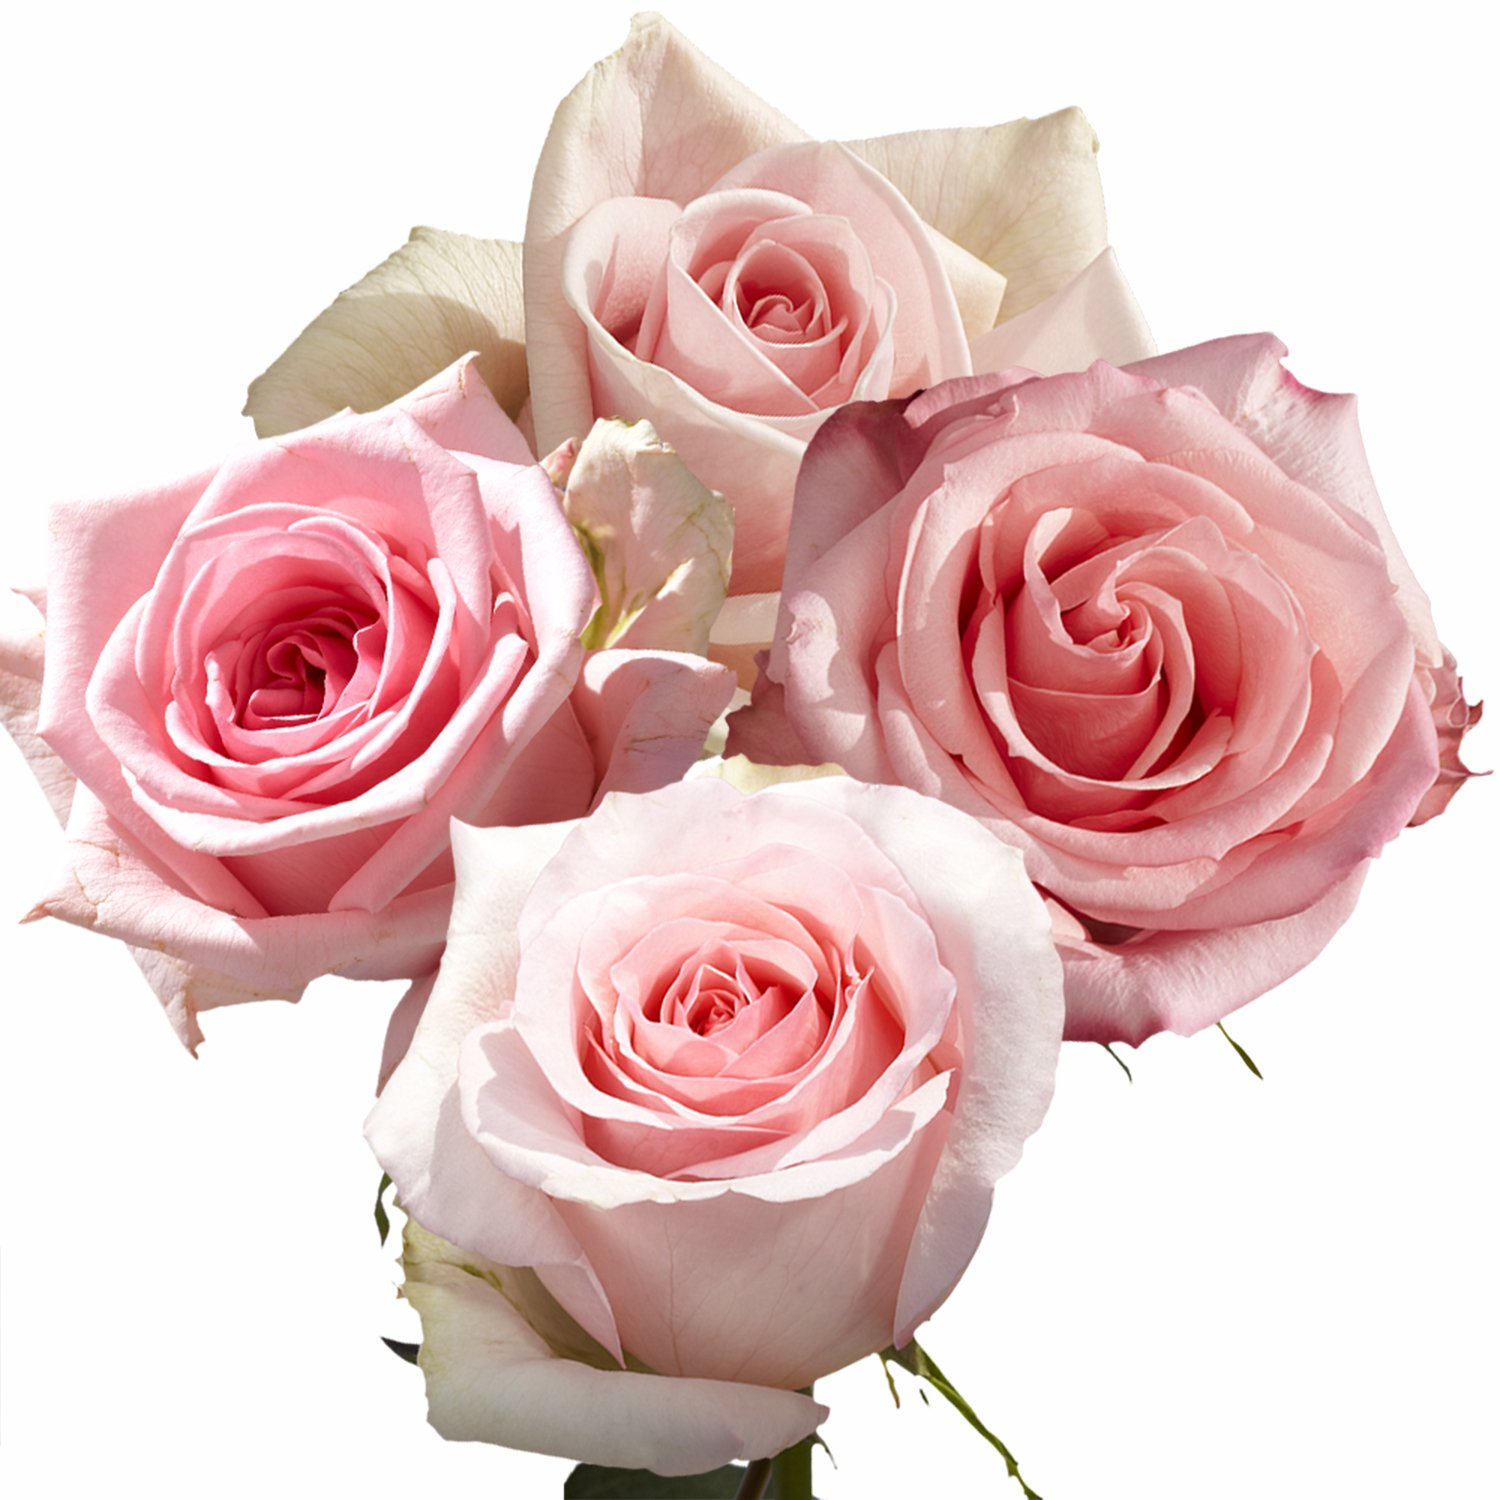 GlobalRose 100 Pink Roses- Exciting Fresh Flowers- Express Delivery by GlobalRose (Image #2)